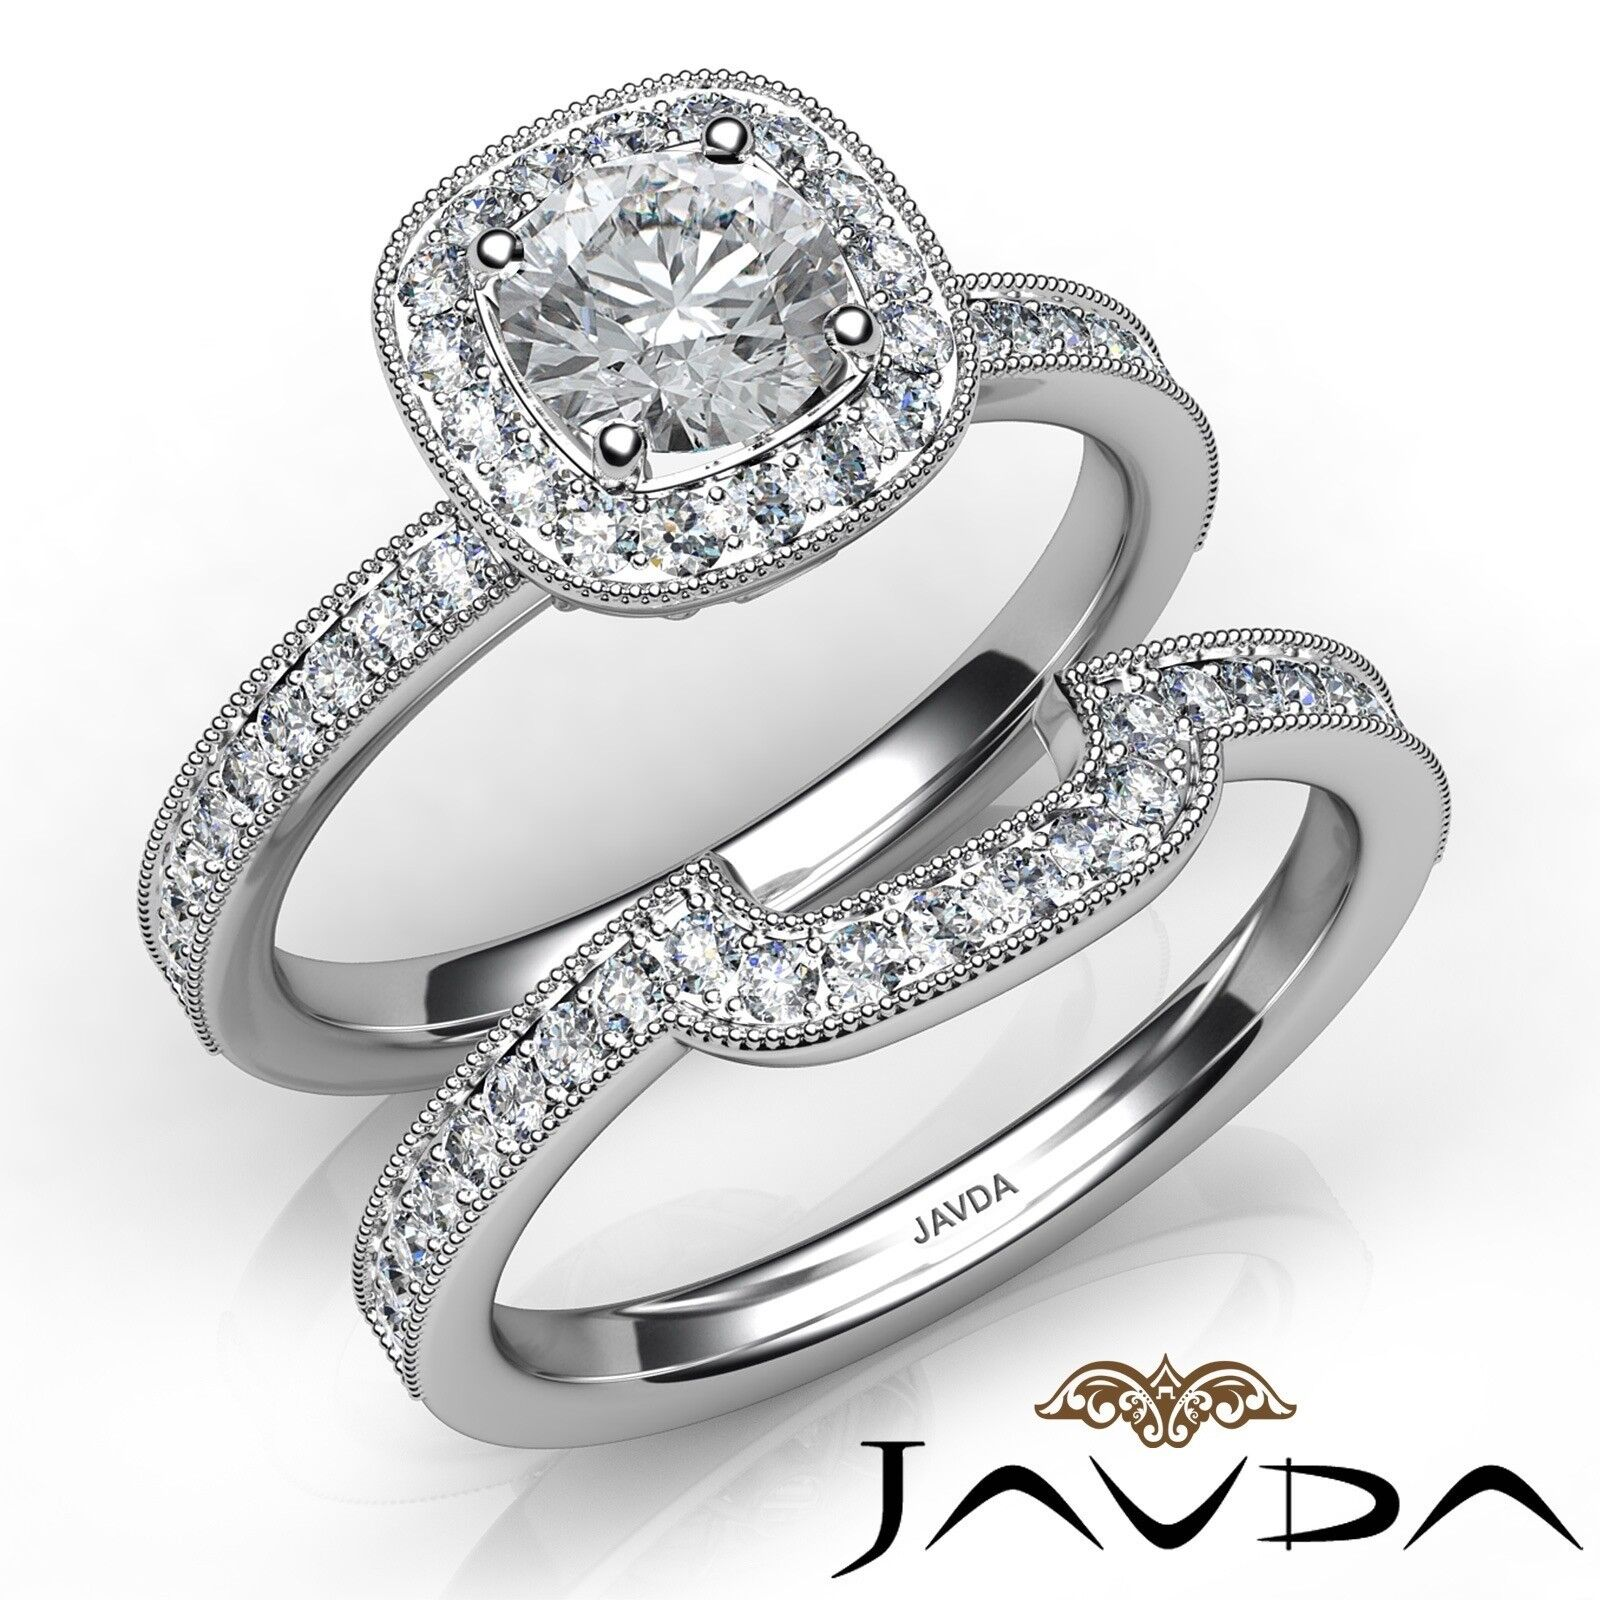 1.4ctw Milgrain Halo Bridal Round Diamond Engagement Ring GIA F-VVS2 White Gold